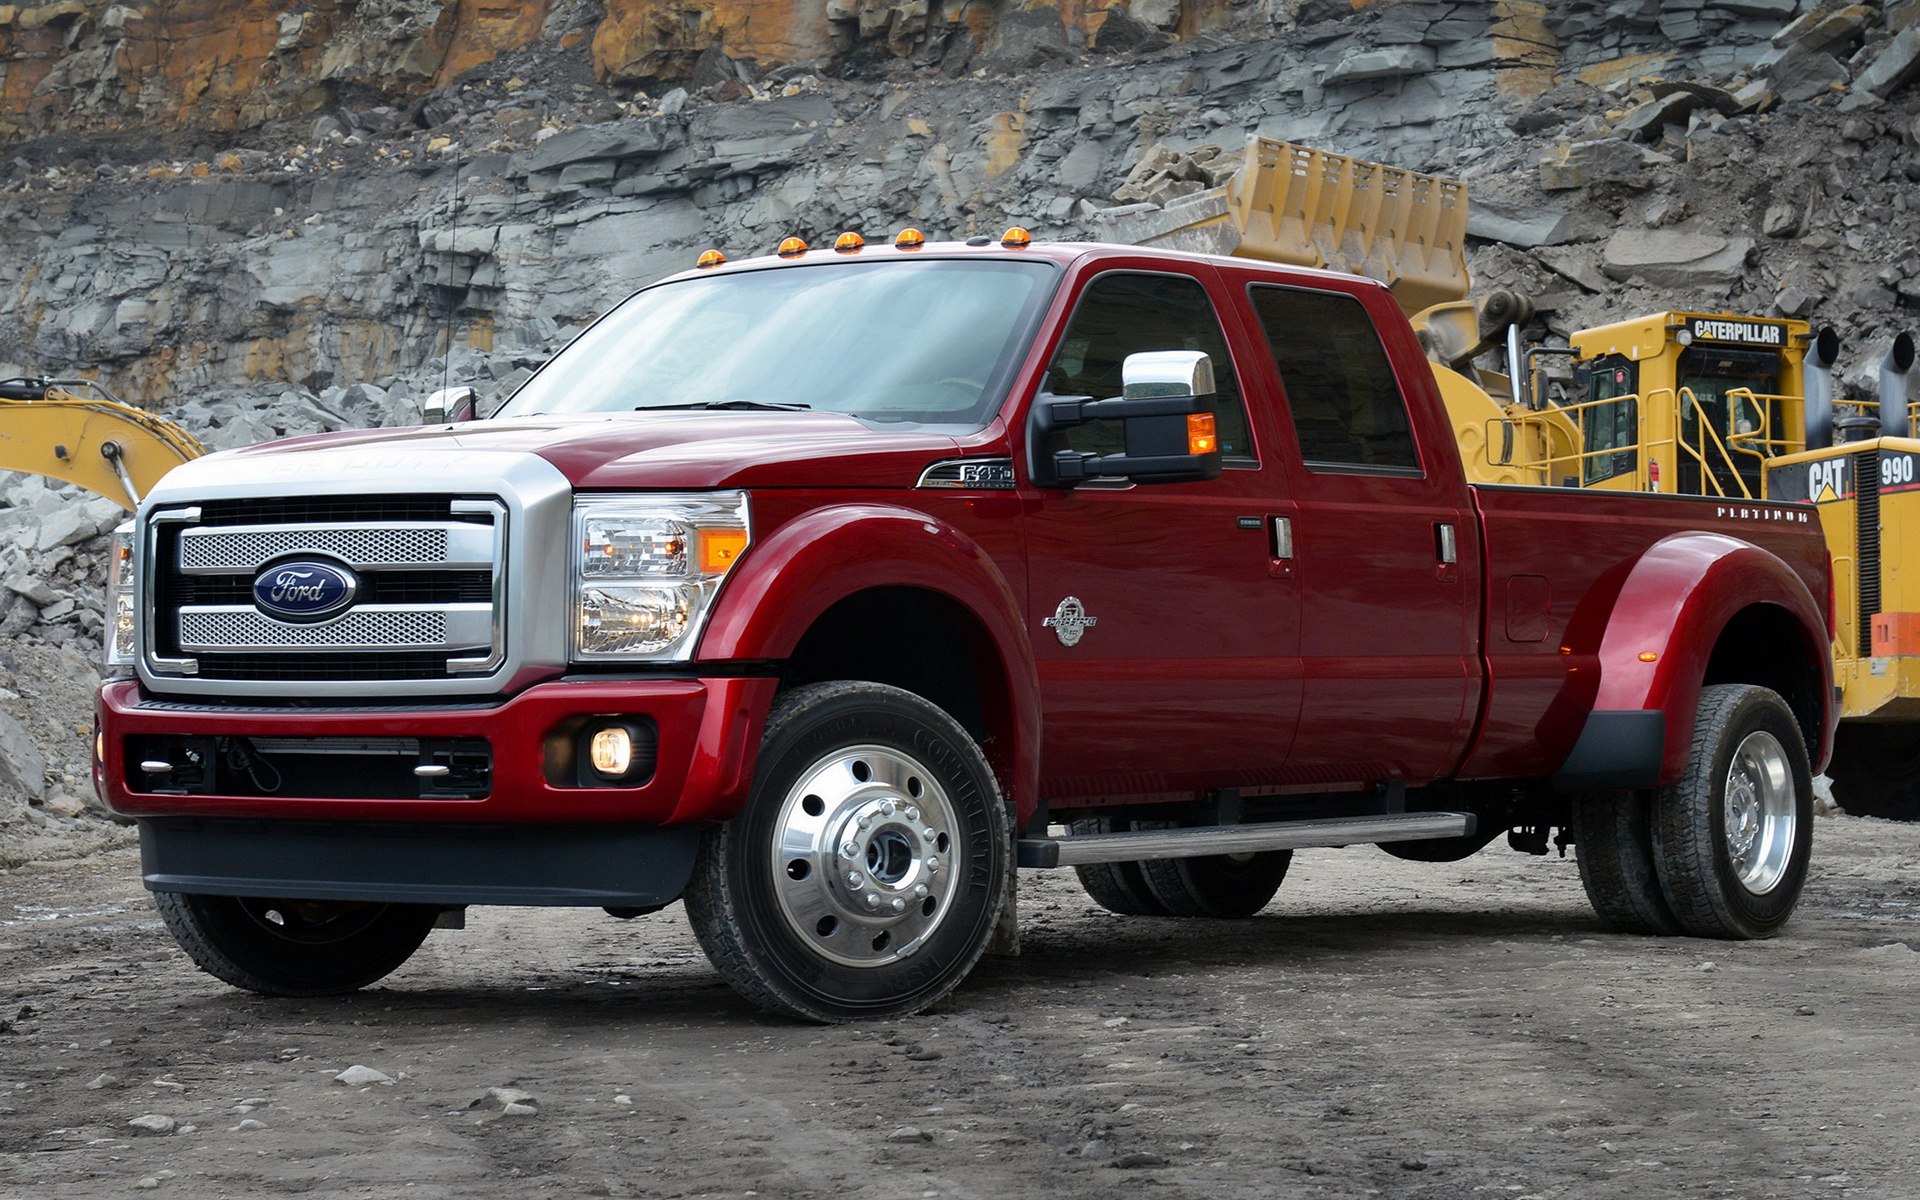 Ford F-450 Platinum Crew Cab (2013) Wallpapers and HD ...